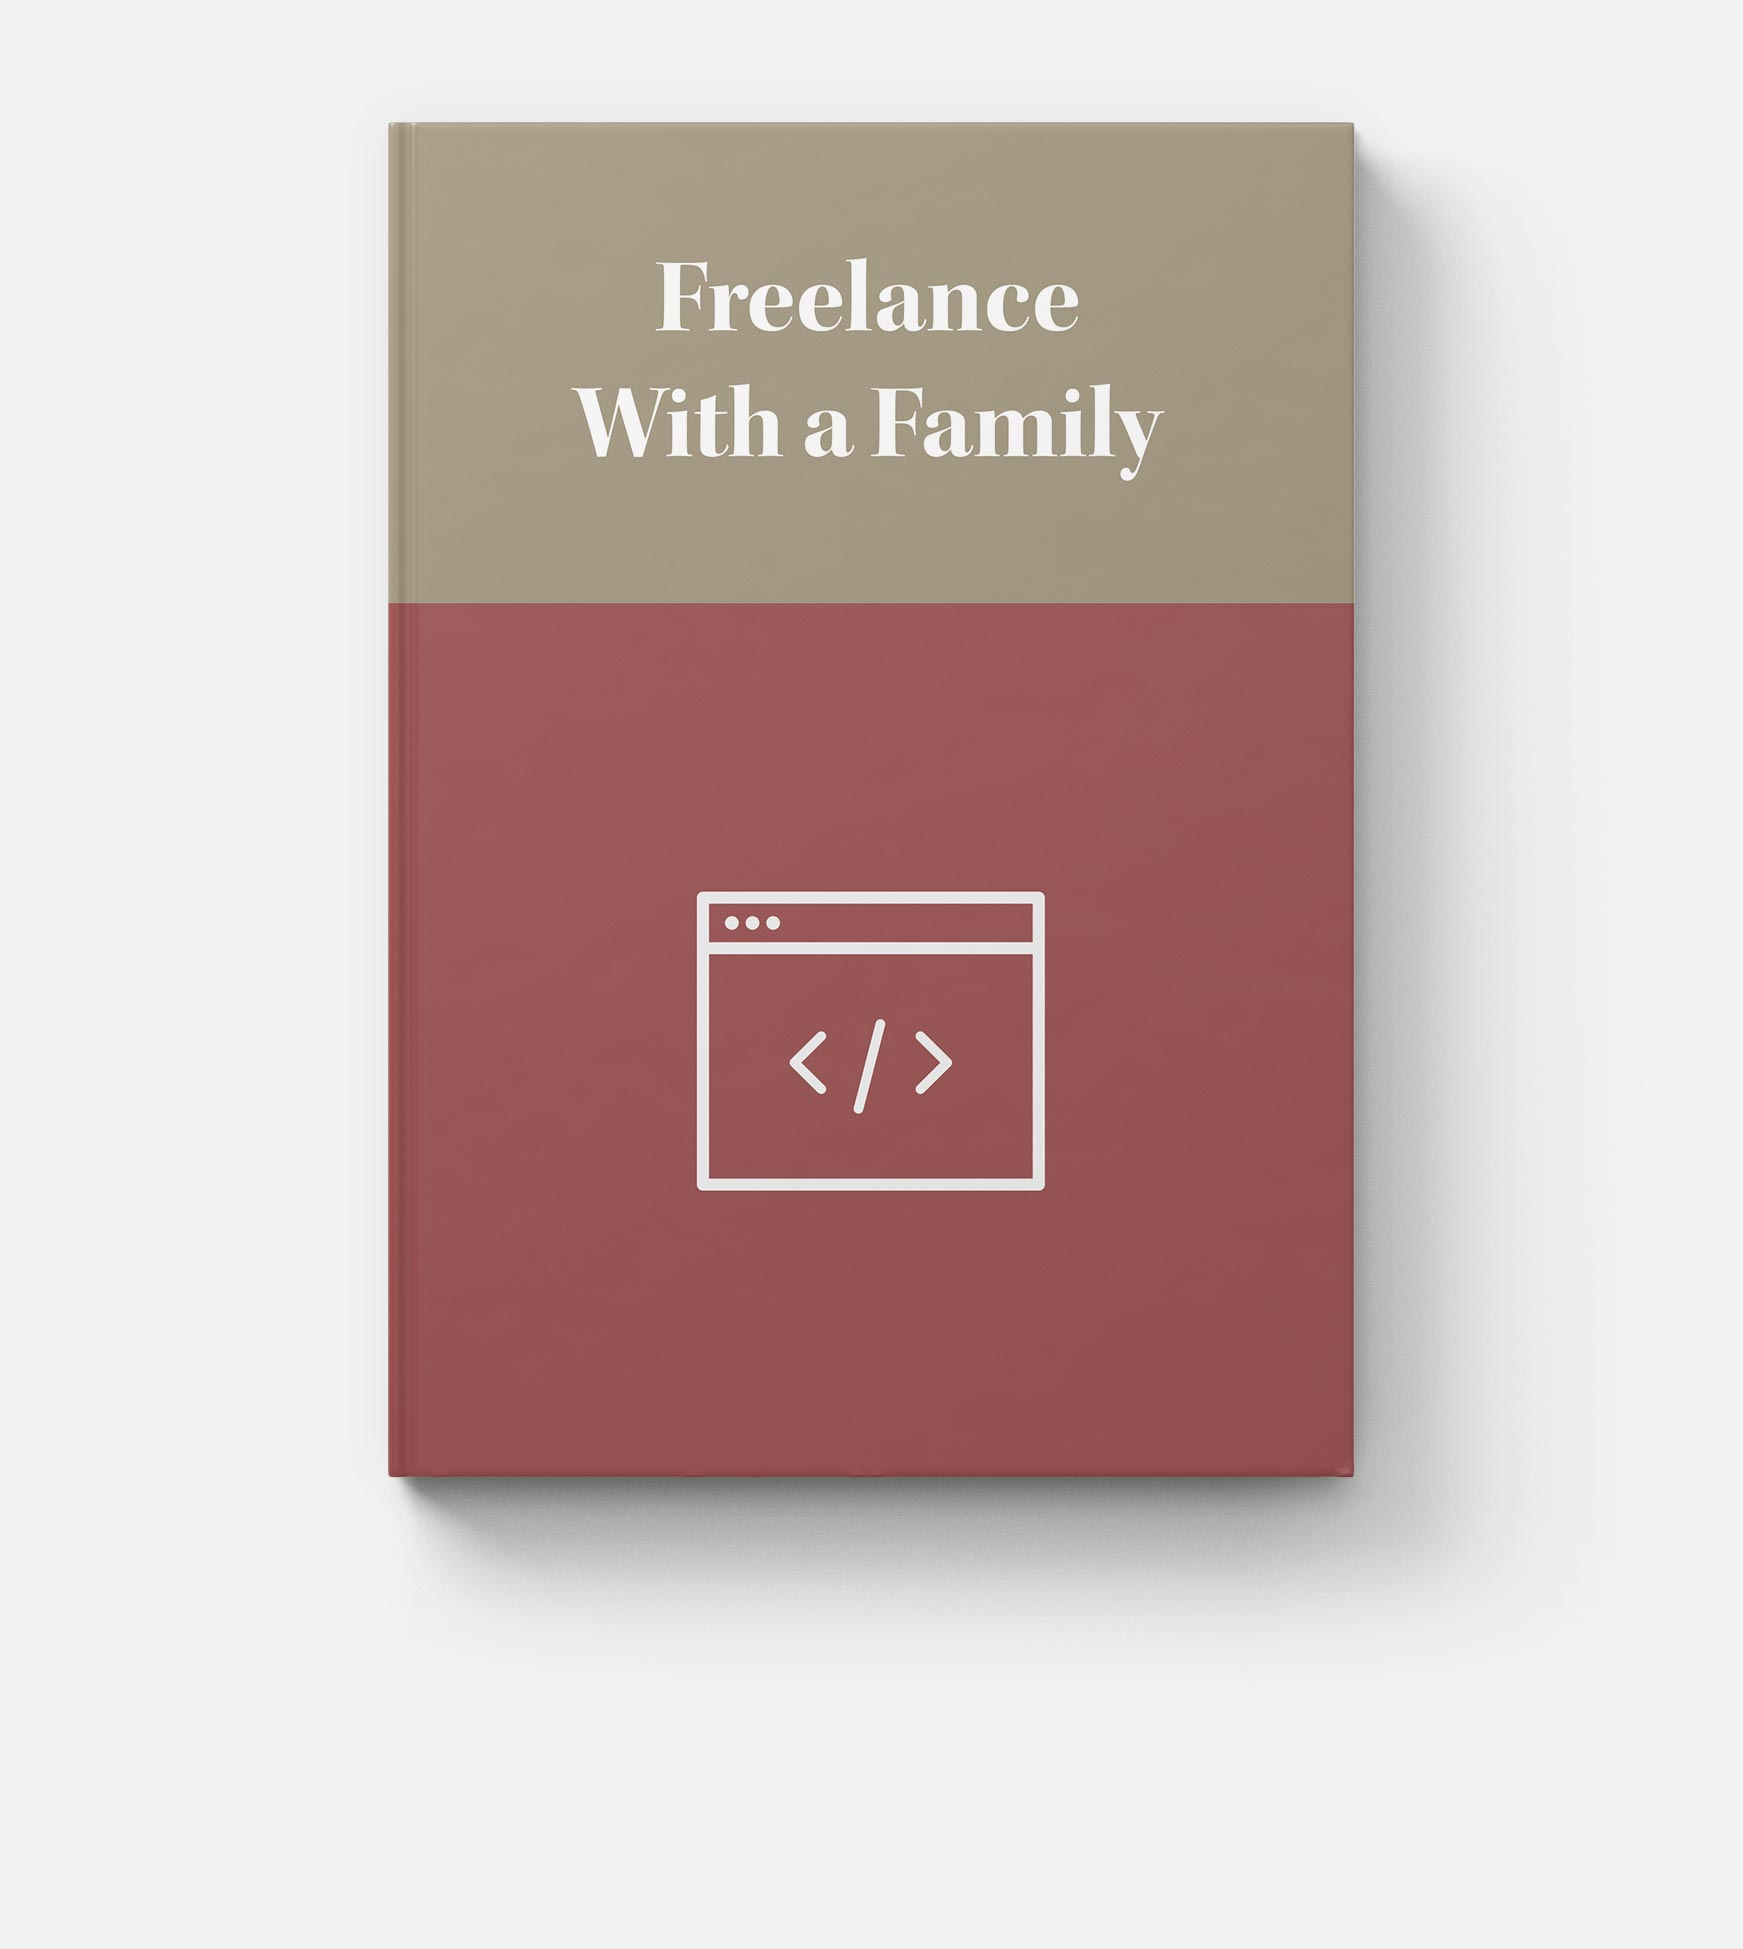 Freelance With a Family book